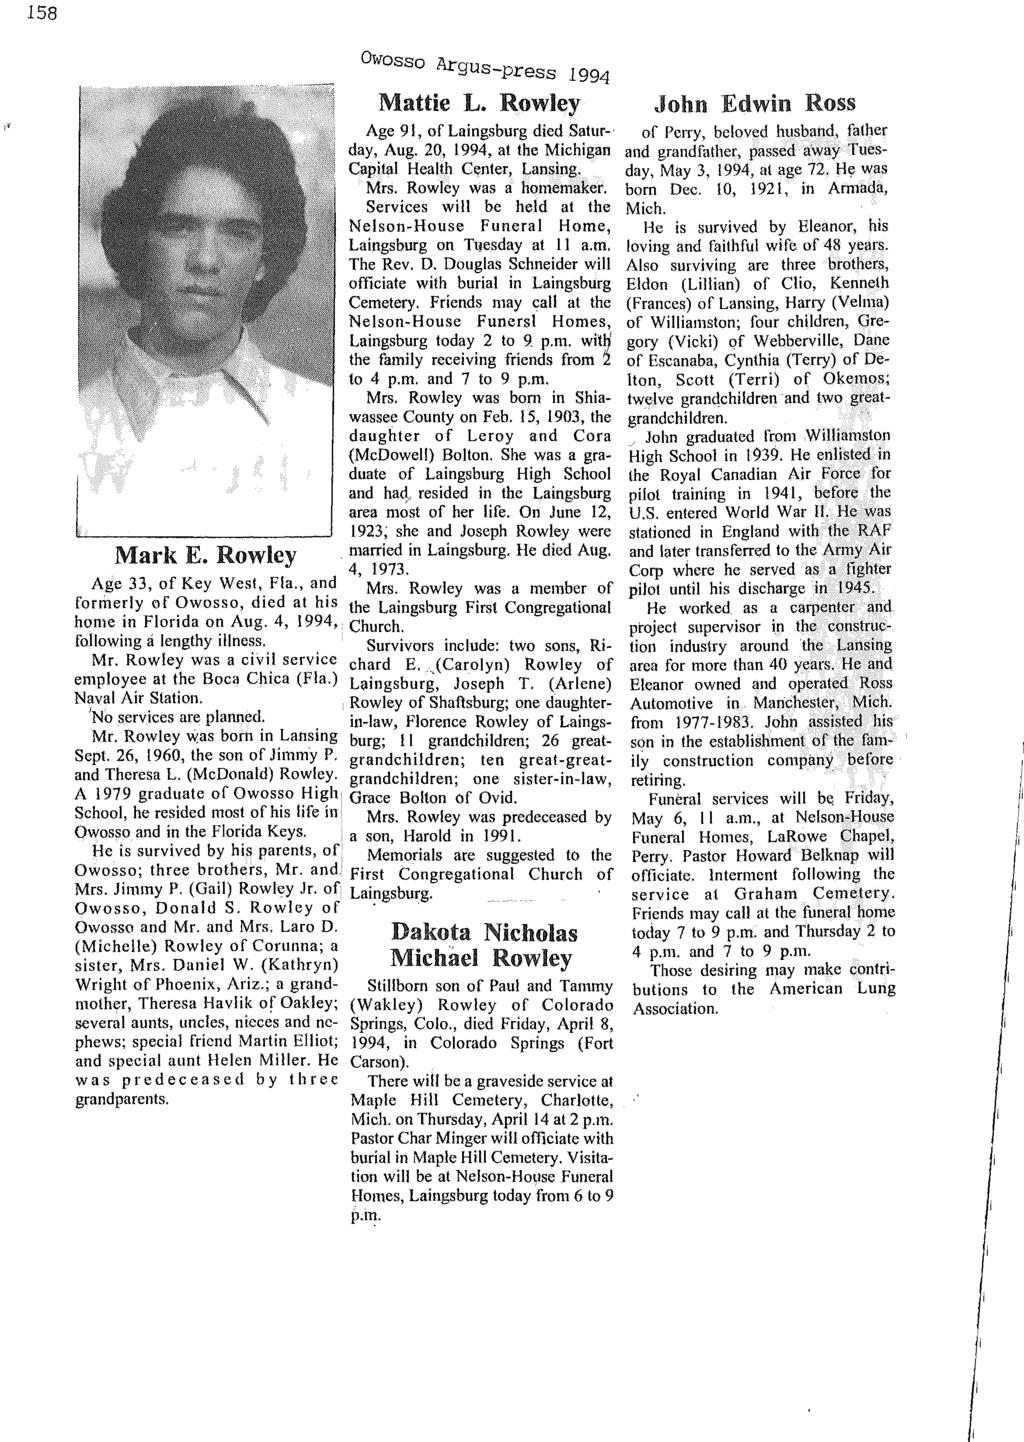 Owosso Ar gus-press 1994 Mattie L. Rowley Age 91, of Laingsburg died Saturday, Aug. 20, 1994, at the Michigan Capital Health Center, Lansing. Mrs. Rowley was a homemaker.